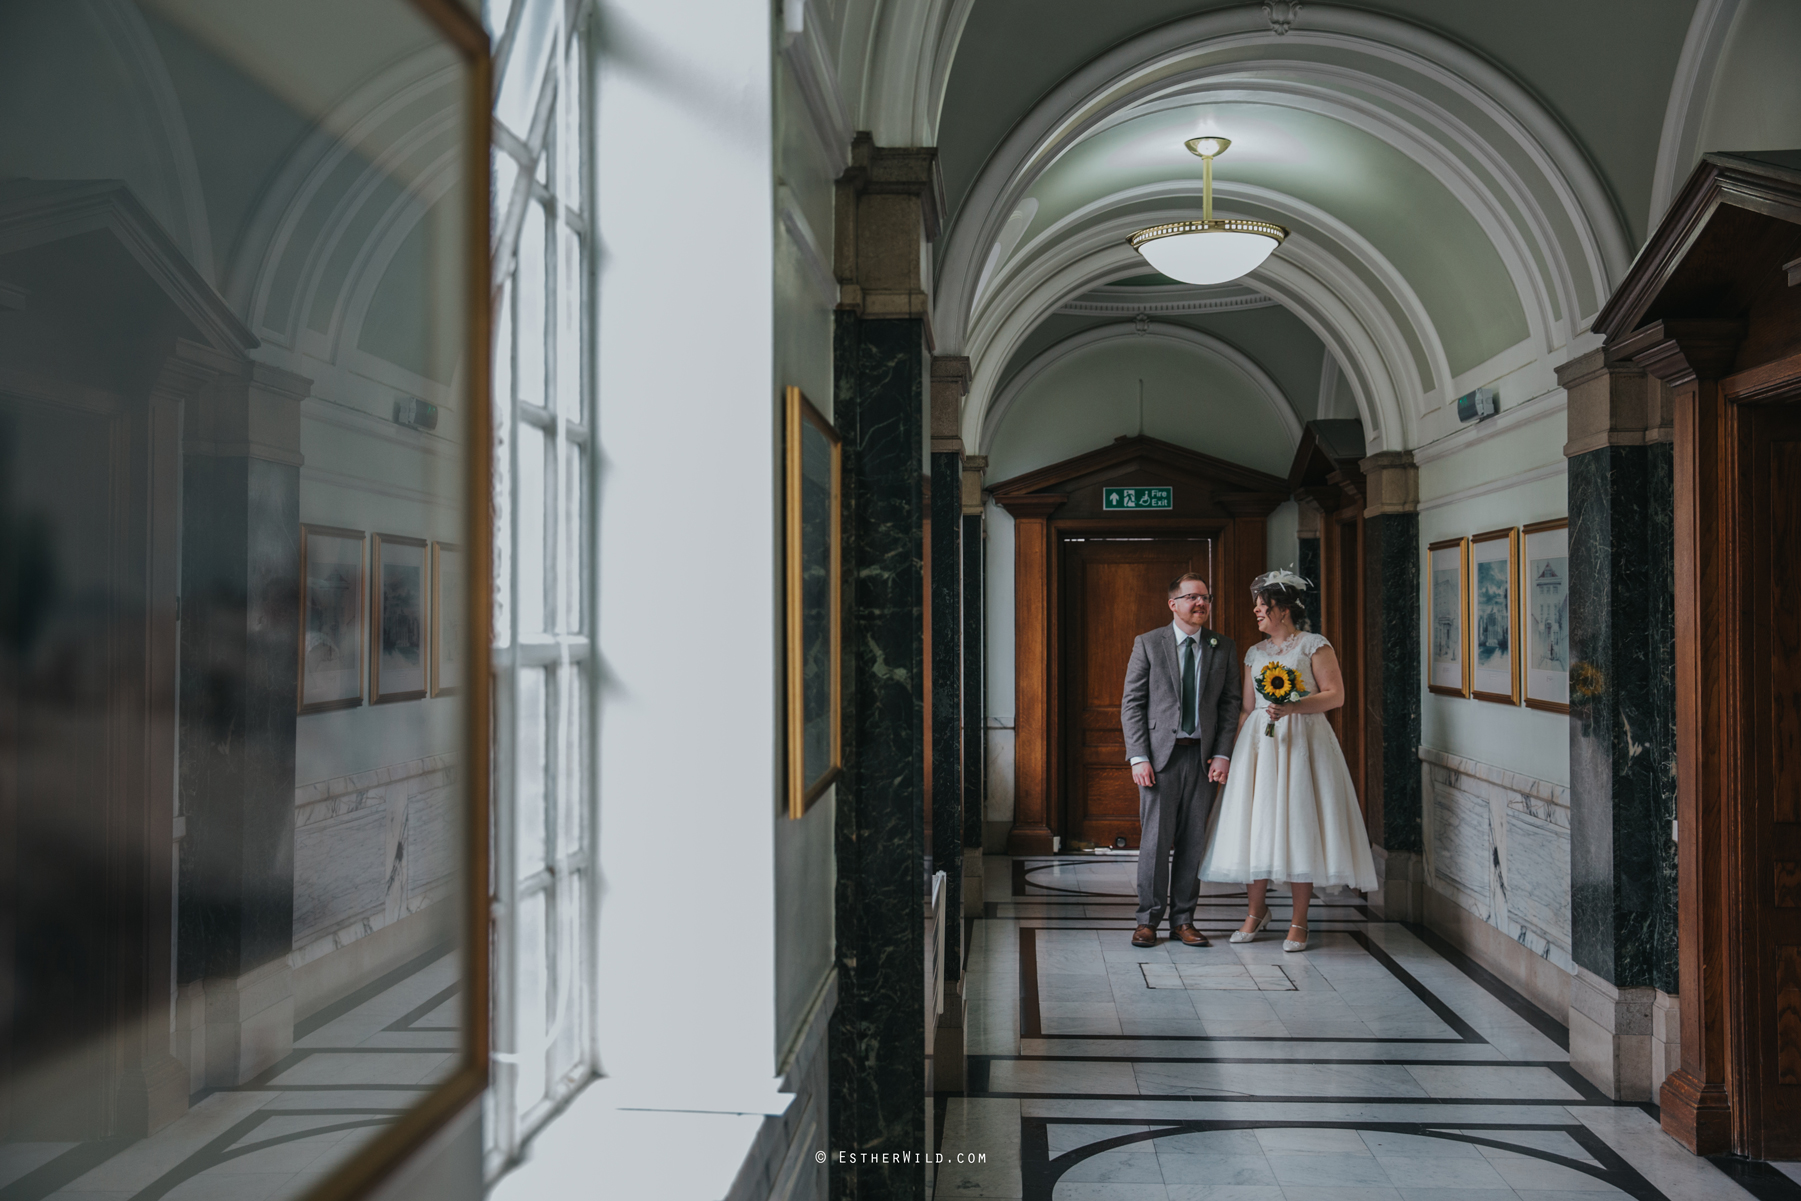 Islington_Town_Hall_Assembly_Hall_Council_Chamber_The_Star_Pub_London_Sacred_Wedding_Copyright_Esther_Wild_Photographer_IMG_0561.jpg